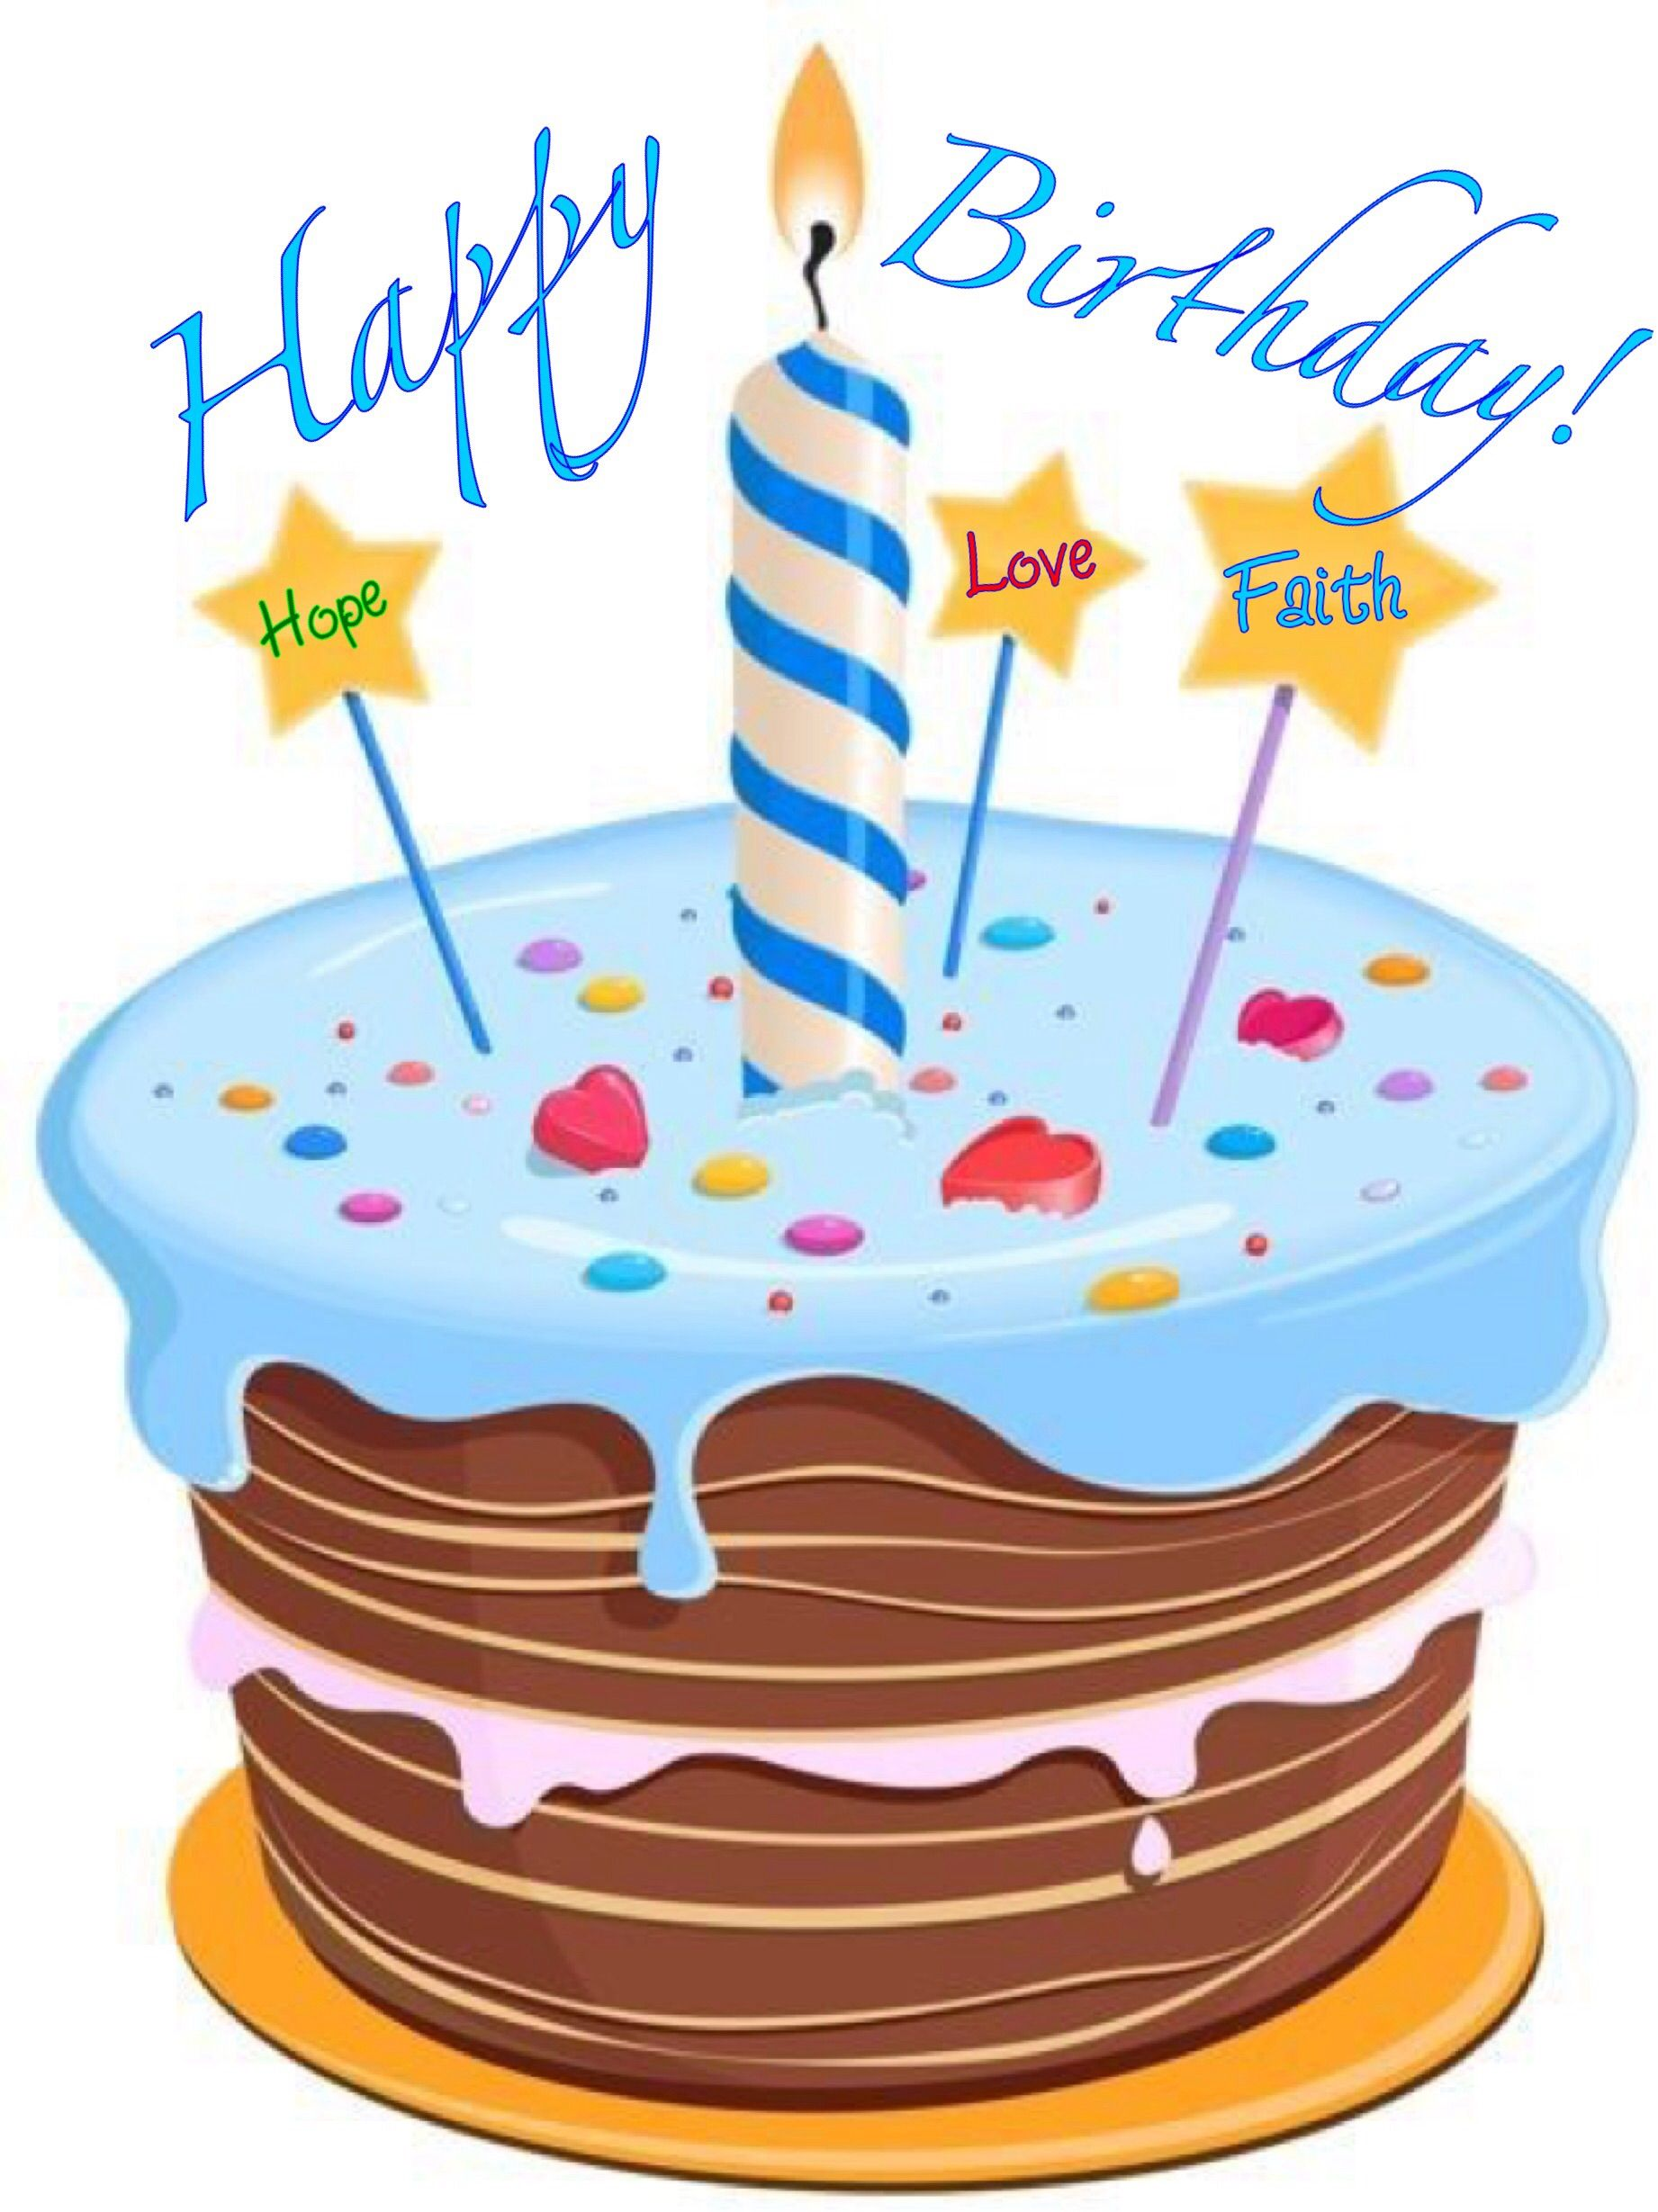 B day cartoon cake. Free clipart of happy birthday with 4 candle